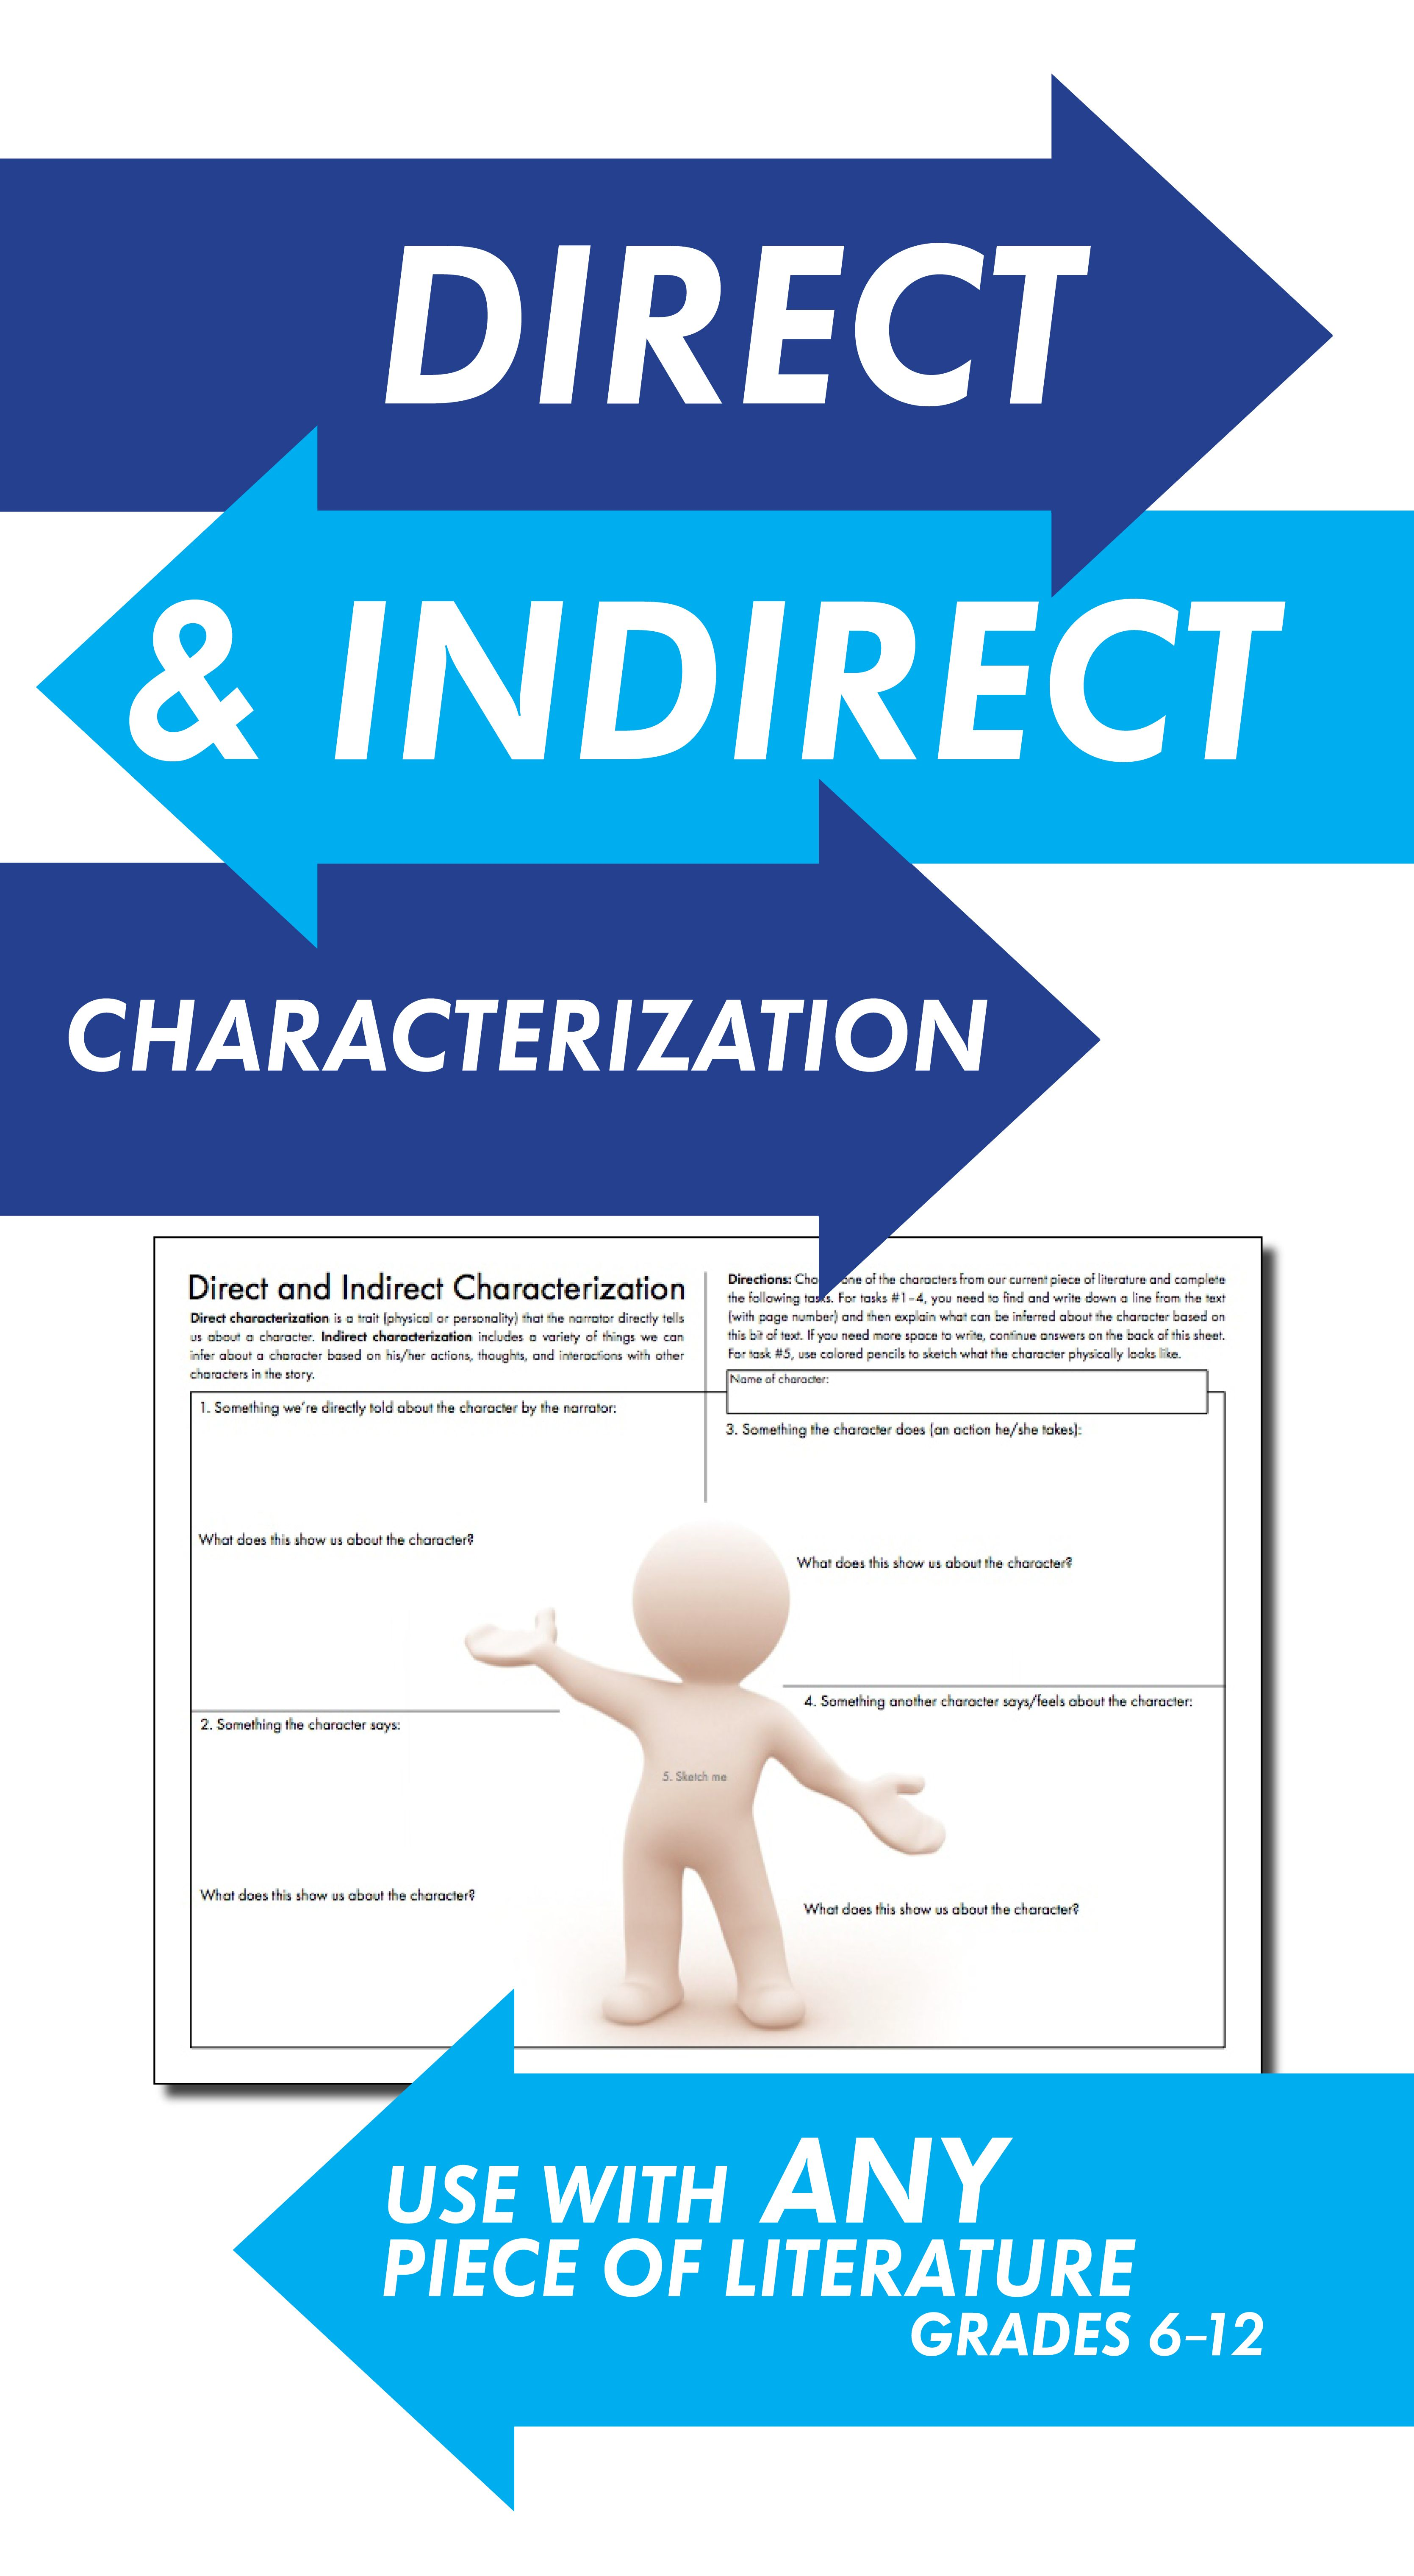 Direct & Indirect Characterization, Fun Print-and-Teach Handout ...